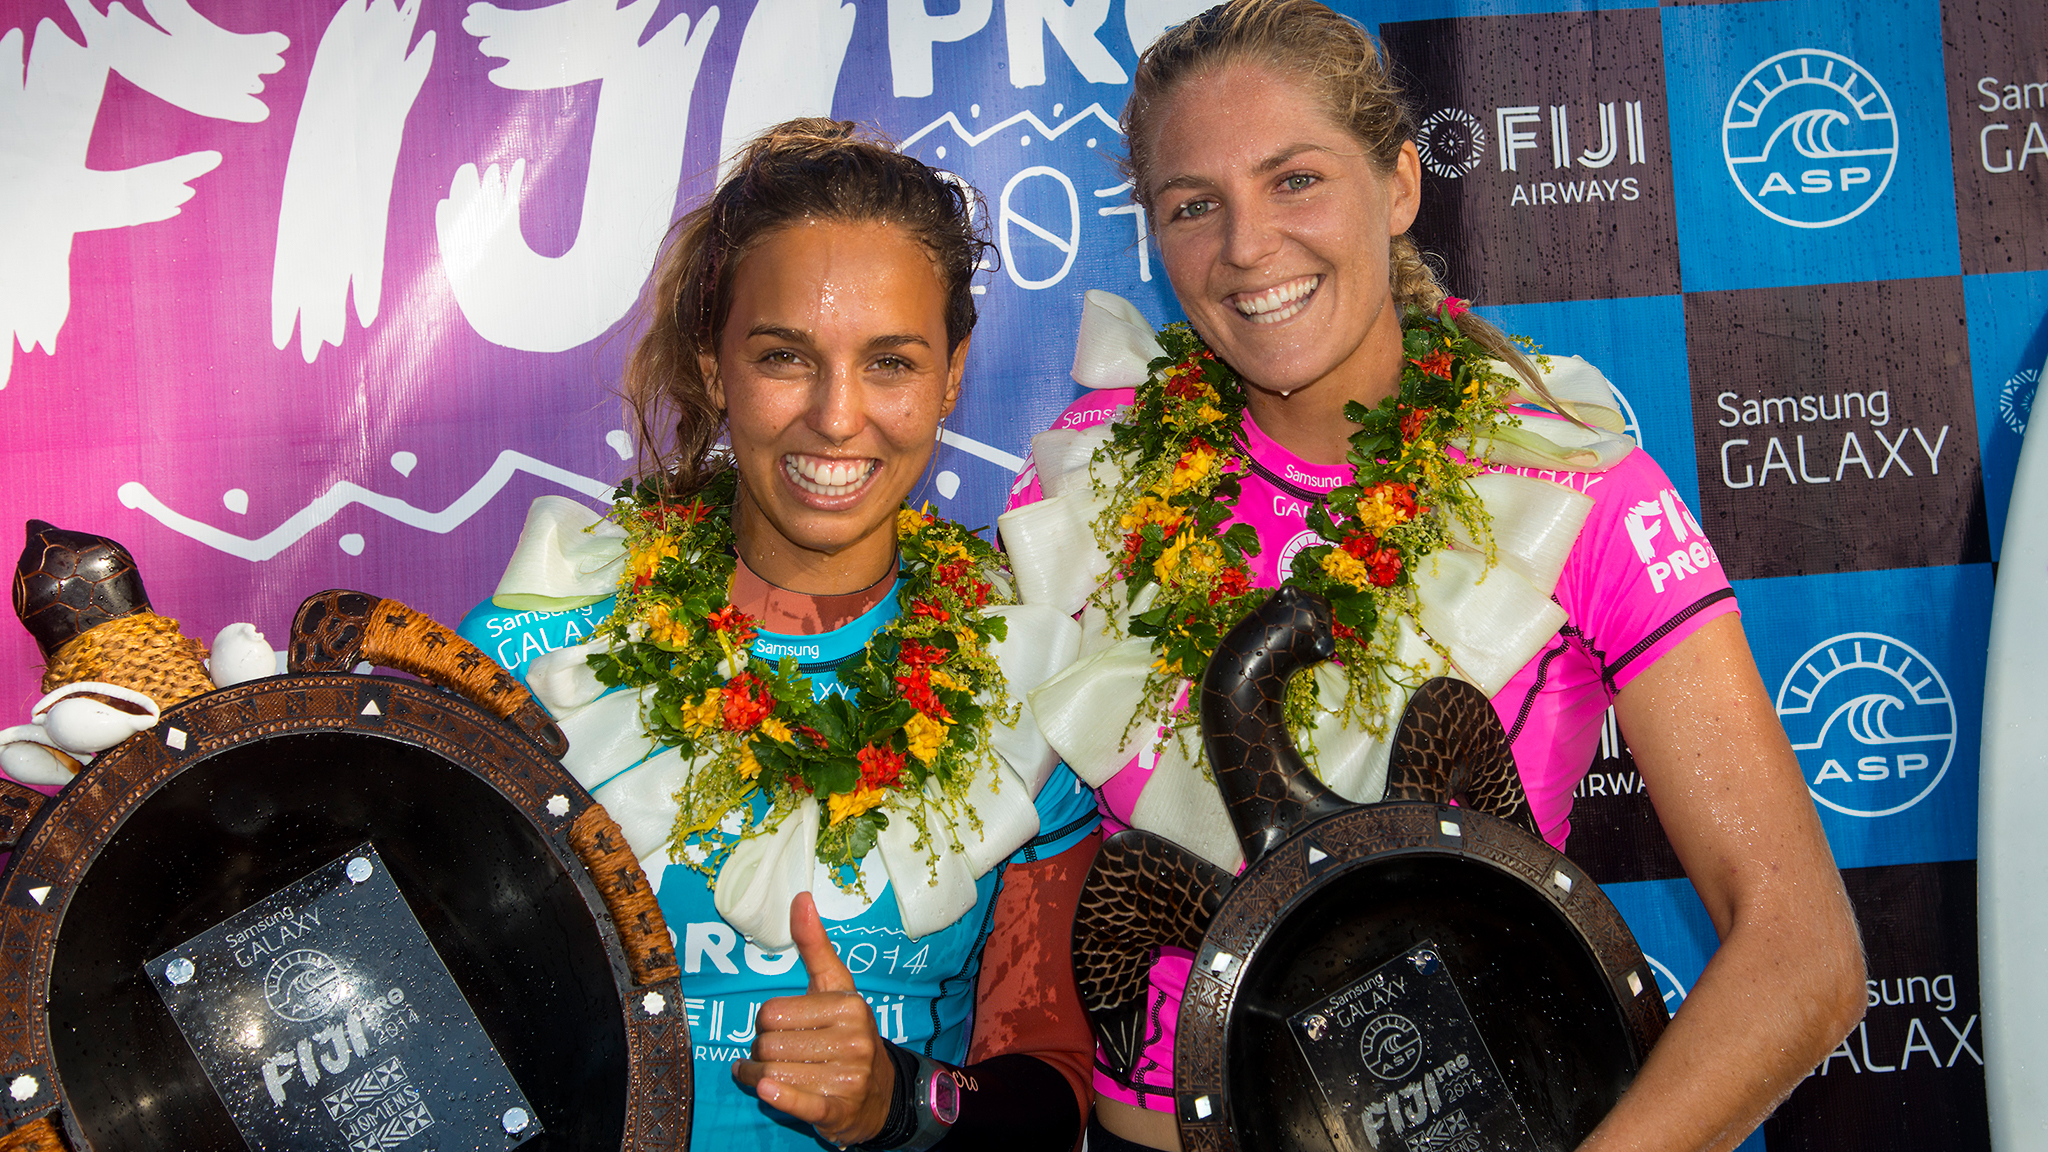 Sally Fitzgibbons, Stephanie Gilmore